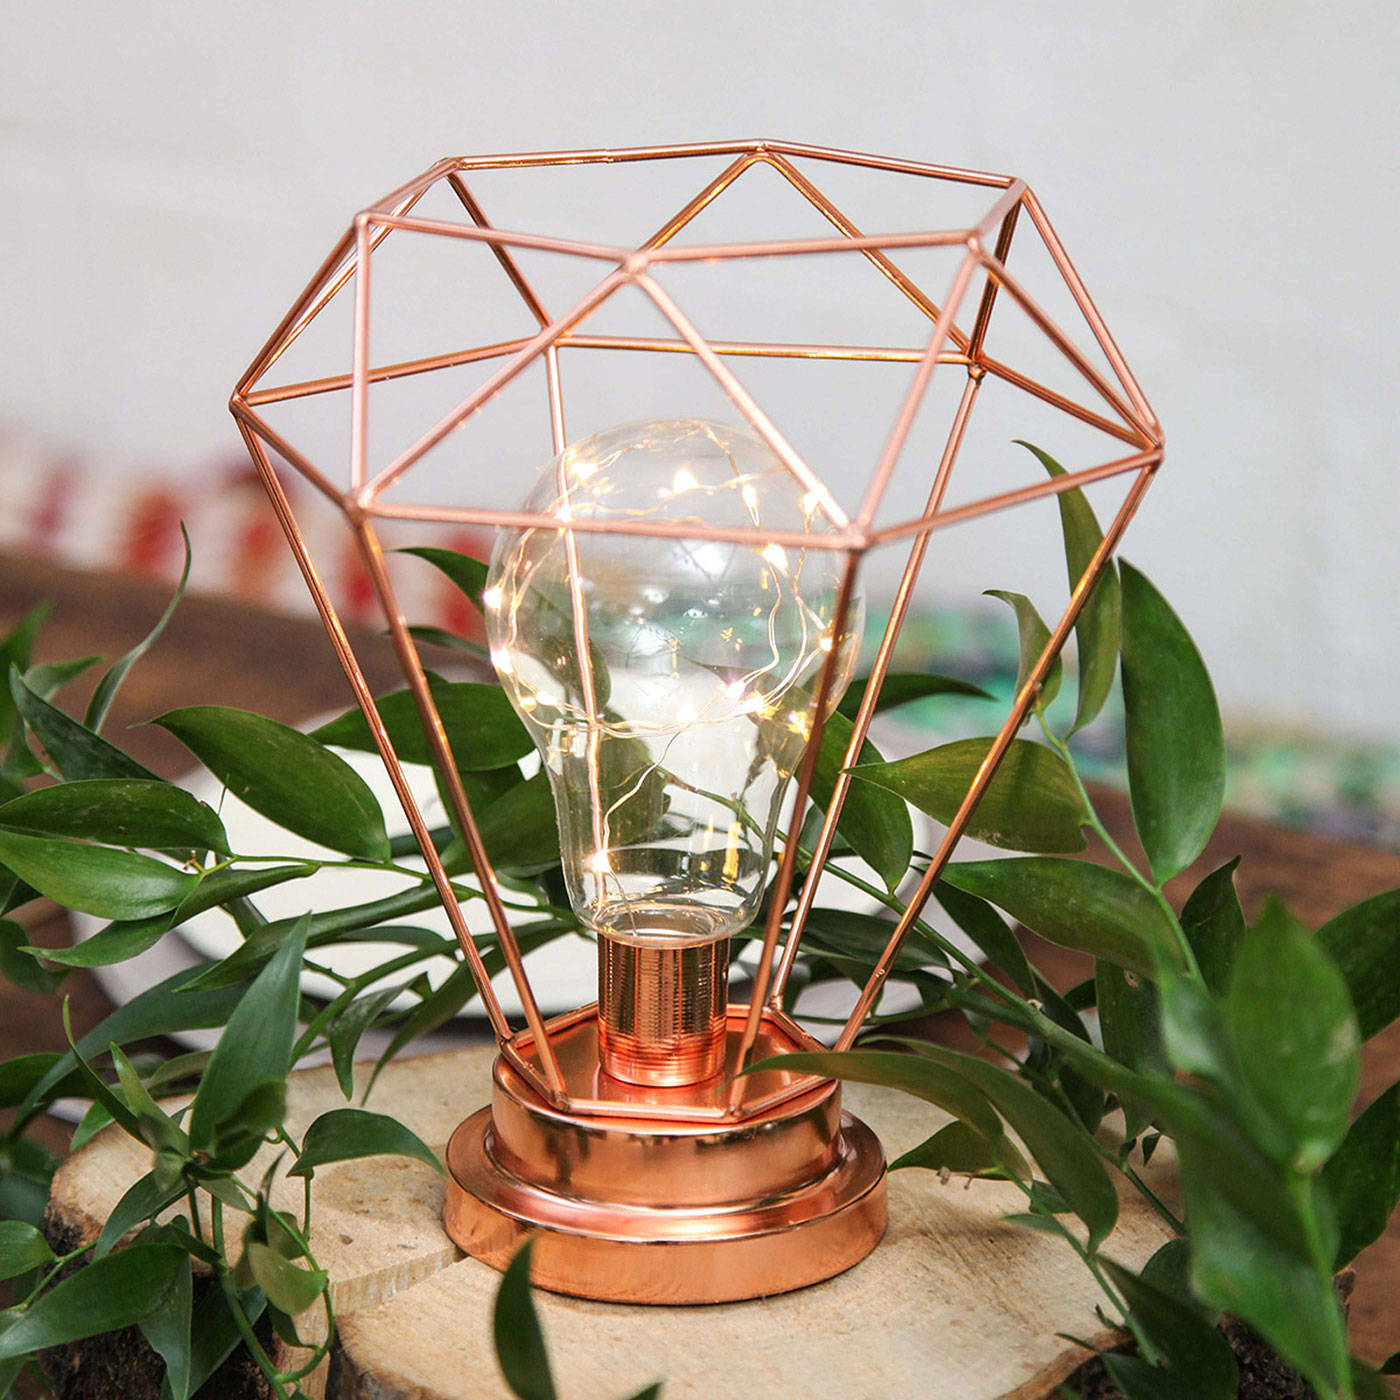 Copper lighting fixture